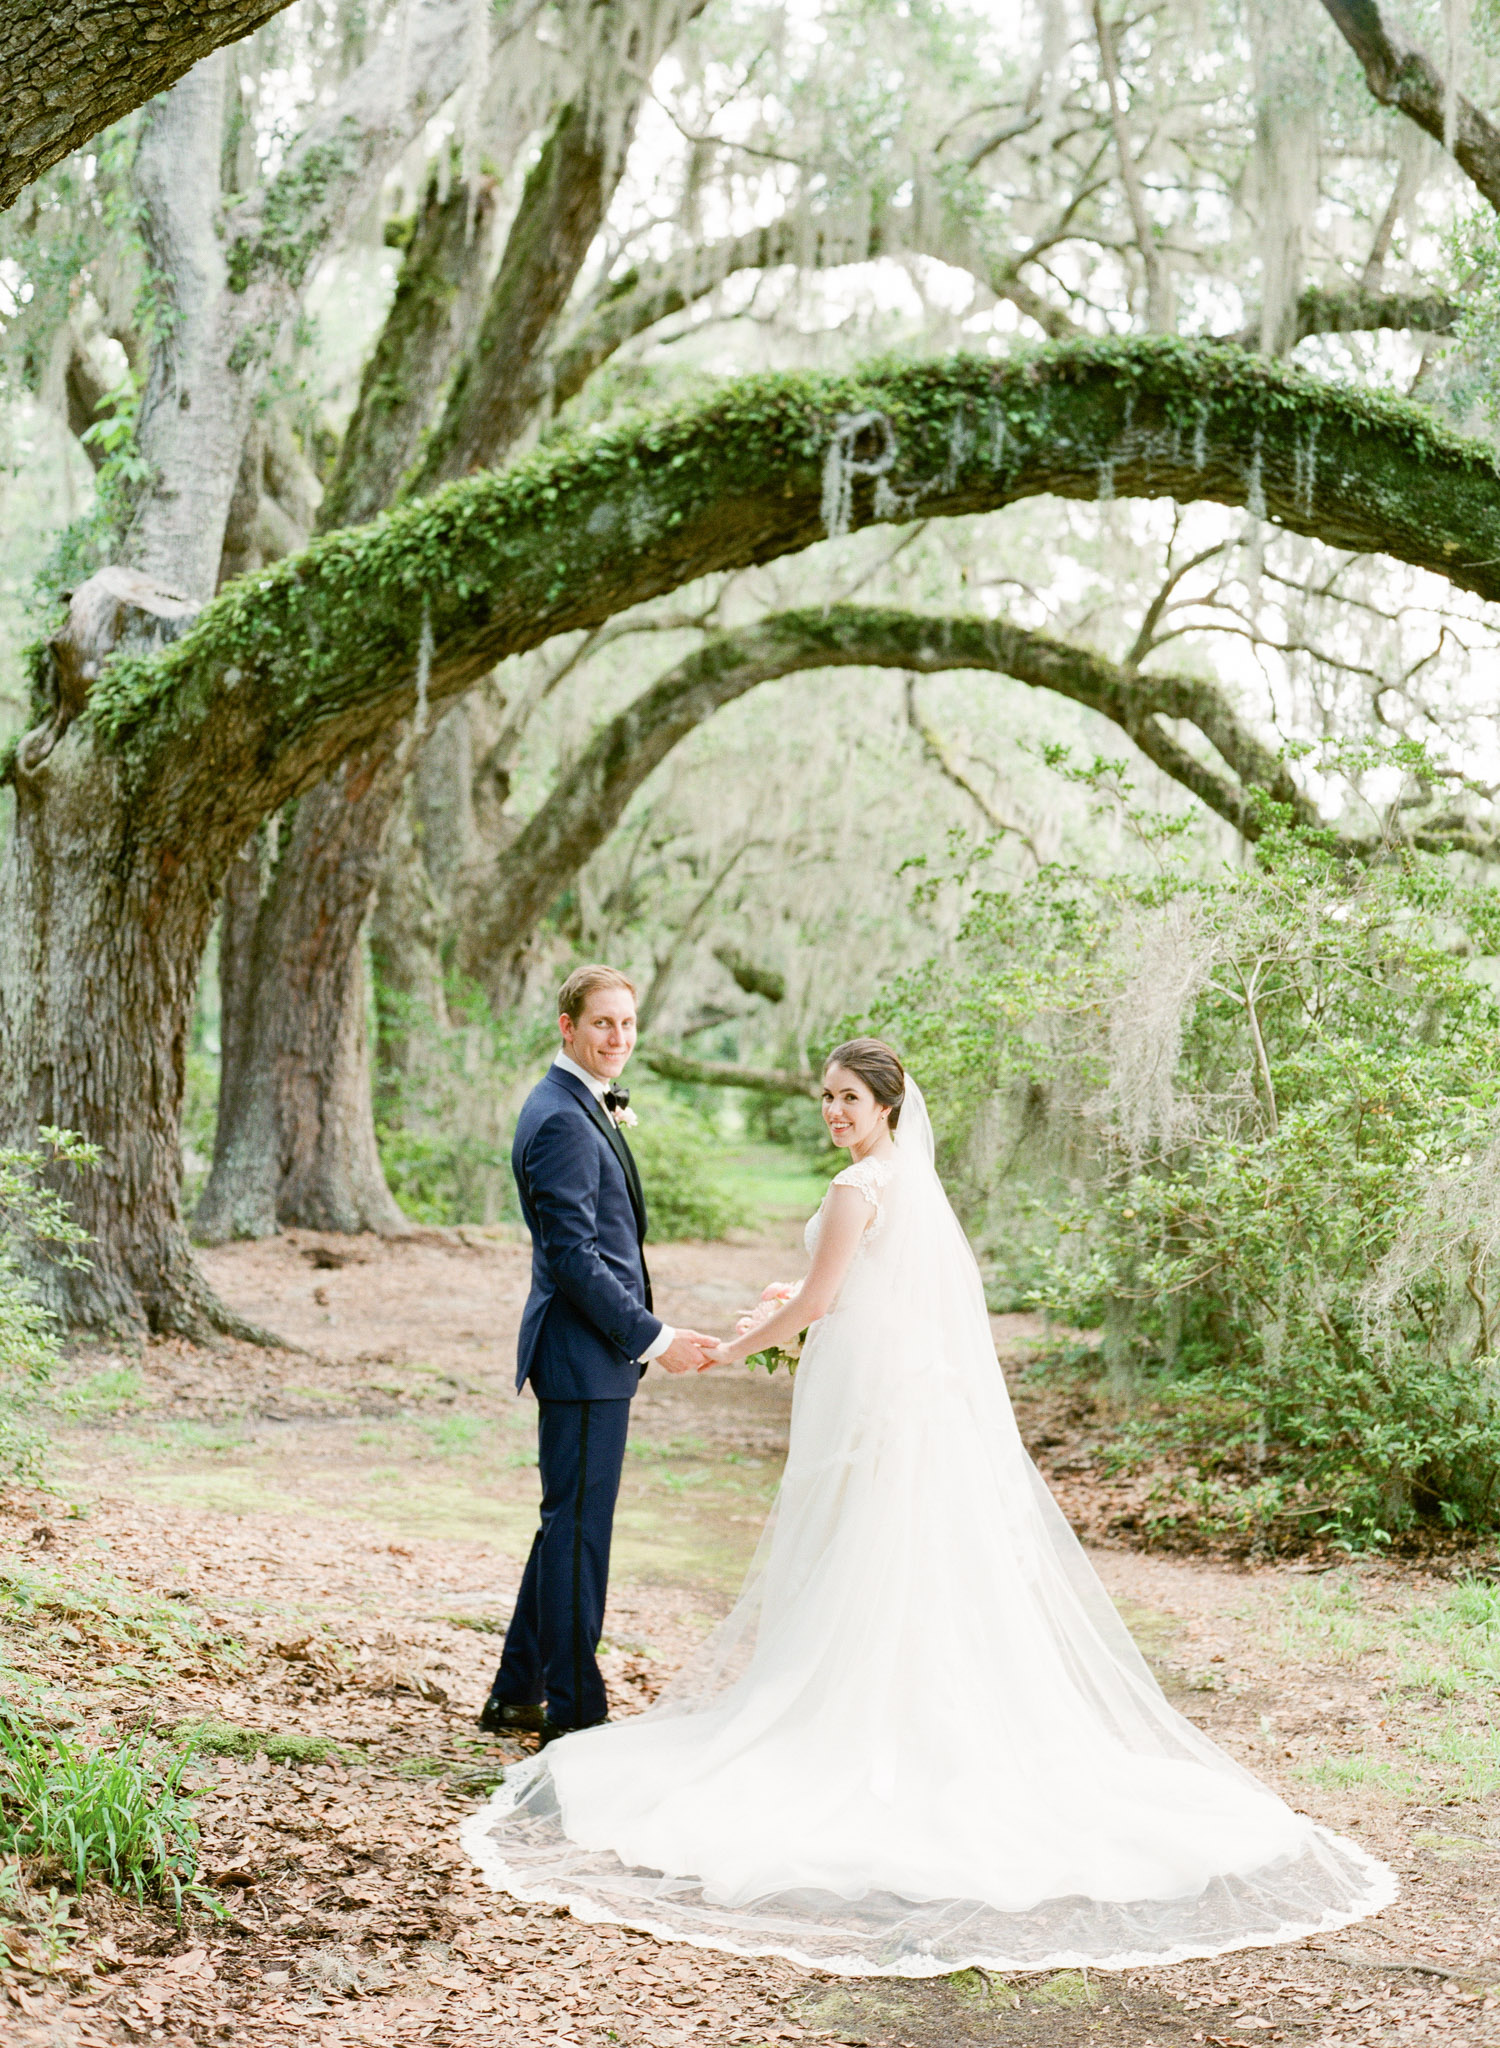 Charleston-Wedding-Photographer-The-Cedar-Room-47.jpg